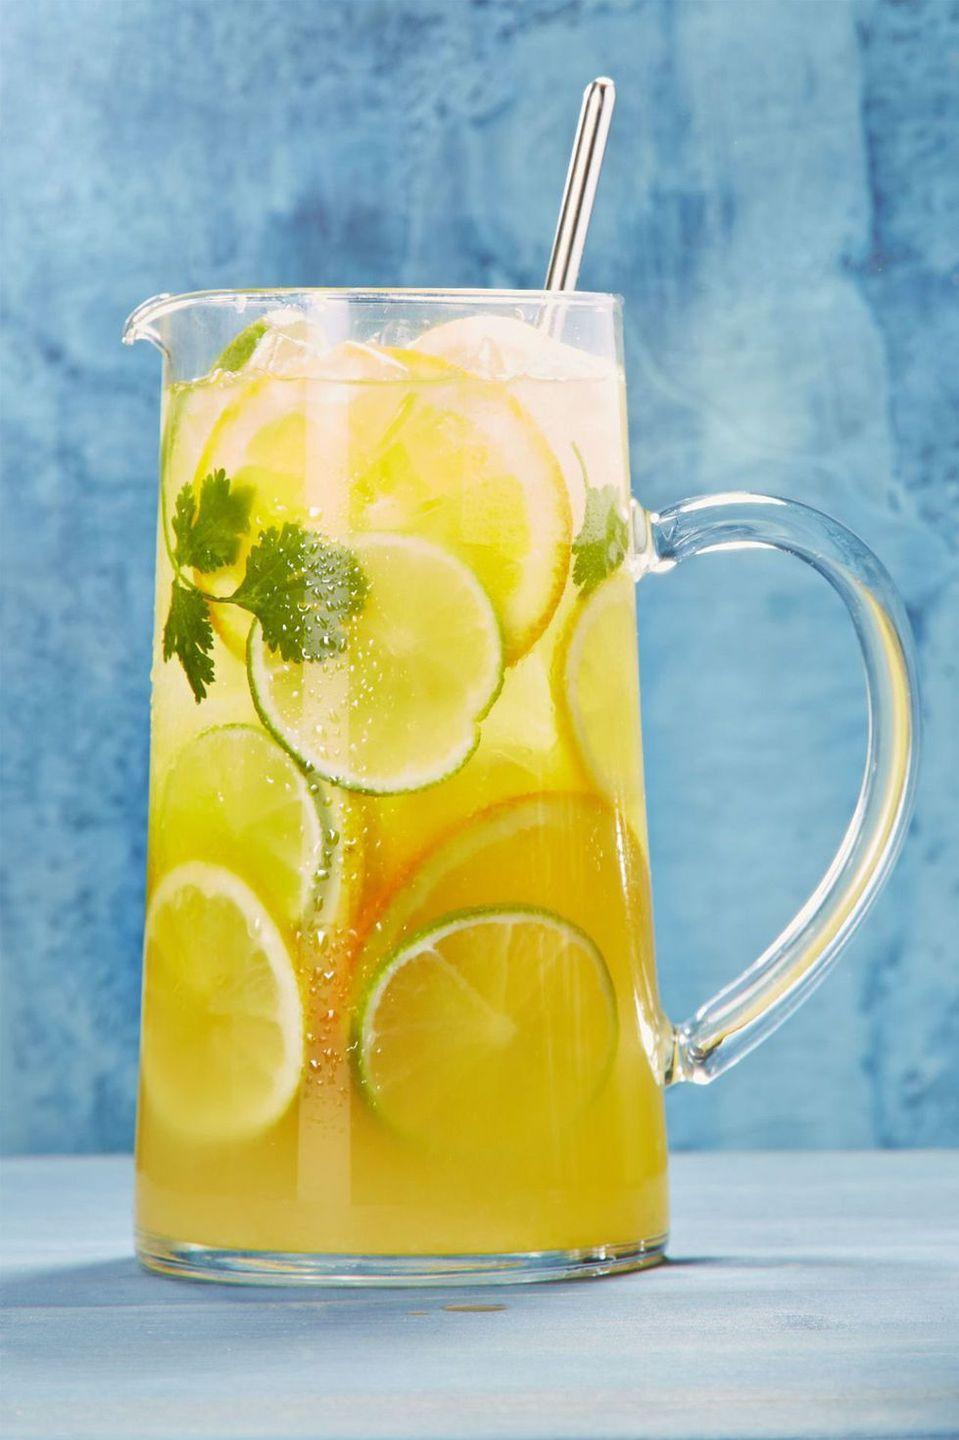 """<p>Make a pitcher of this orange, lemon, and lime boozy drink, and see how long it lasts. Hint: It won't be long. </p><p><em><a href=""""https://www.goodhousekeeping.com/food-recipes/a44204/citrusy-white-sangria-margarita-recipe/"""" rel=""""nofollow noopener"""" target=""""_blank"""" data-ylk=""""slk:Get the recipe for Citrusy White Sangria Margarita »"""" class=""""link rapid-noclick-resp"""">Get the recipe for Citrusy White Sangria Margarita »</a></em></p><p><strong>RELATED:</strong> <a href=""""https://www.goodhousekeeping.com/holidays/g3483/memorial-day-desserts/"""" rel=""""nofollow noopener"""" target=""""_blank"""" data-ylk=""""slk:28 Memorial Day Desserts That'll Make Your Party So Much Sweeter"""" class=""""link rapid-noclick-resp"""">28 Memorial Day Desserts That'll Make Your Party So Much Sweeter</a><br></p>"""